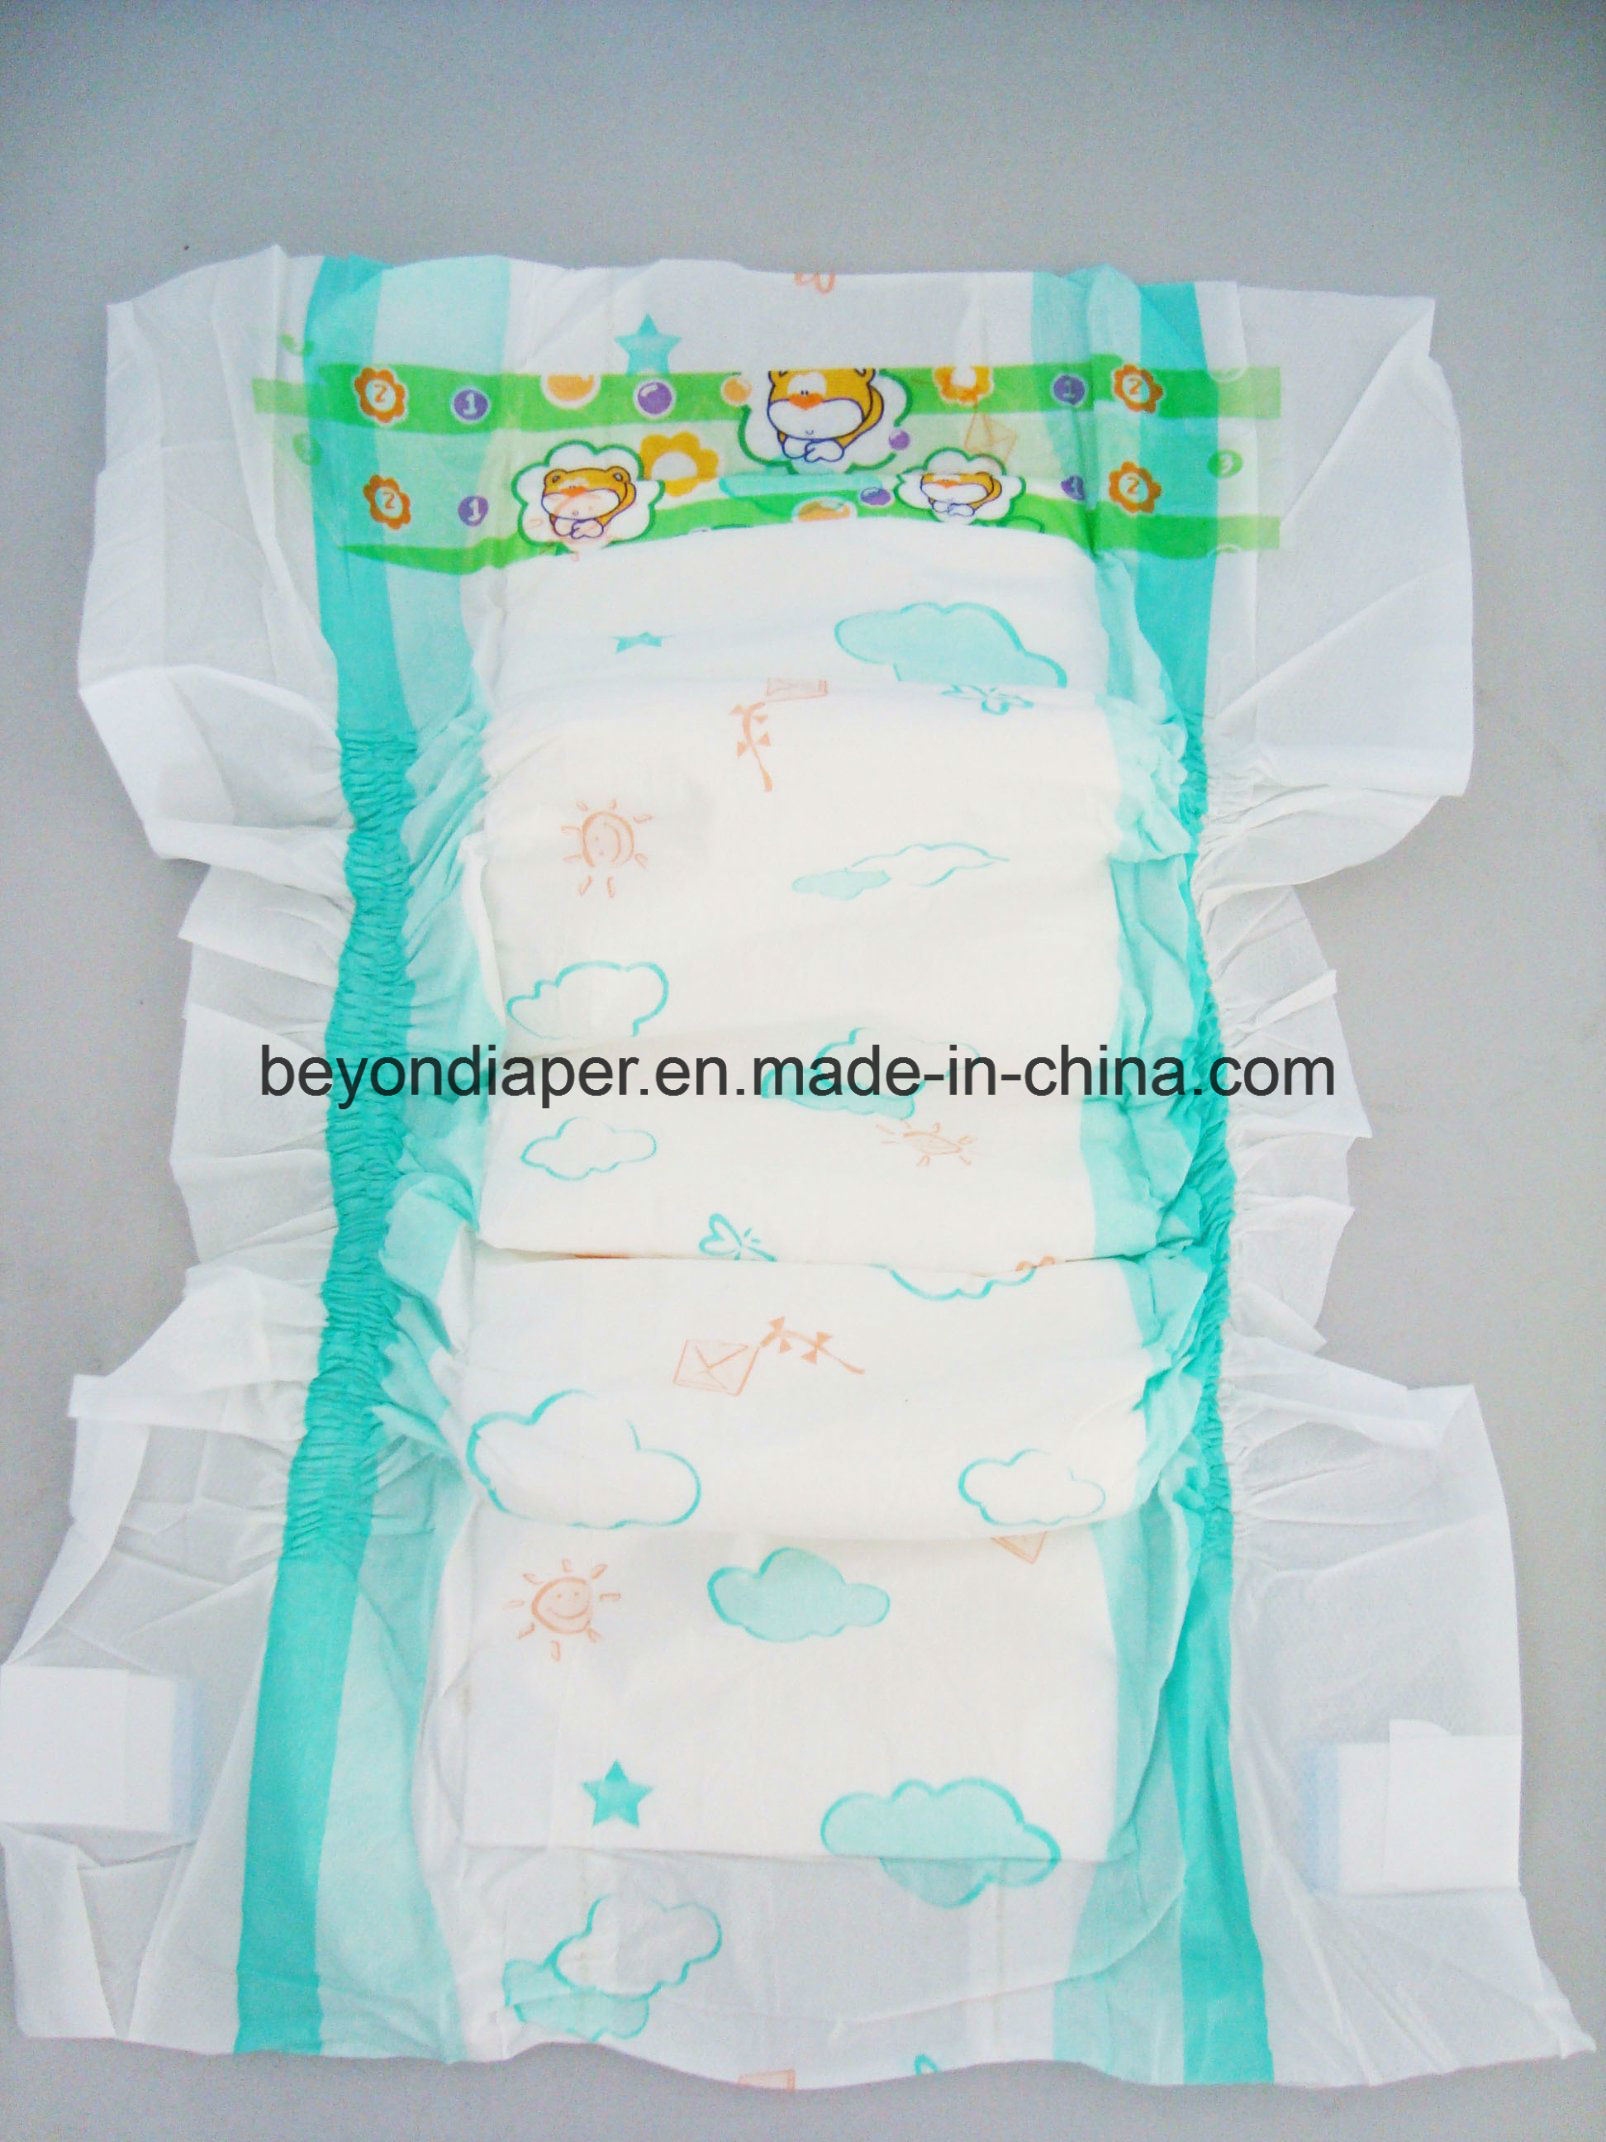 Tell me what size diapers are optimal for a newborn baby And what material to choose if the child